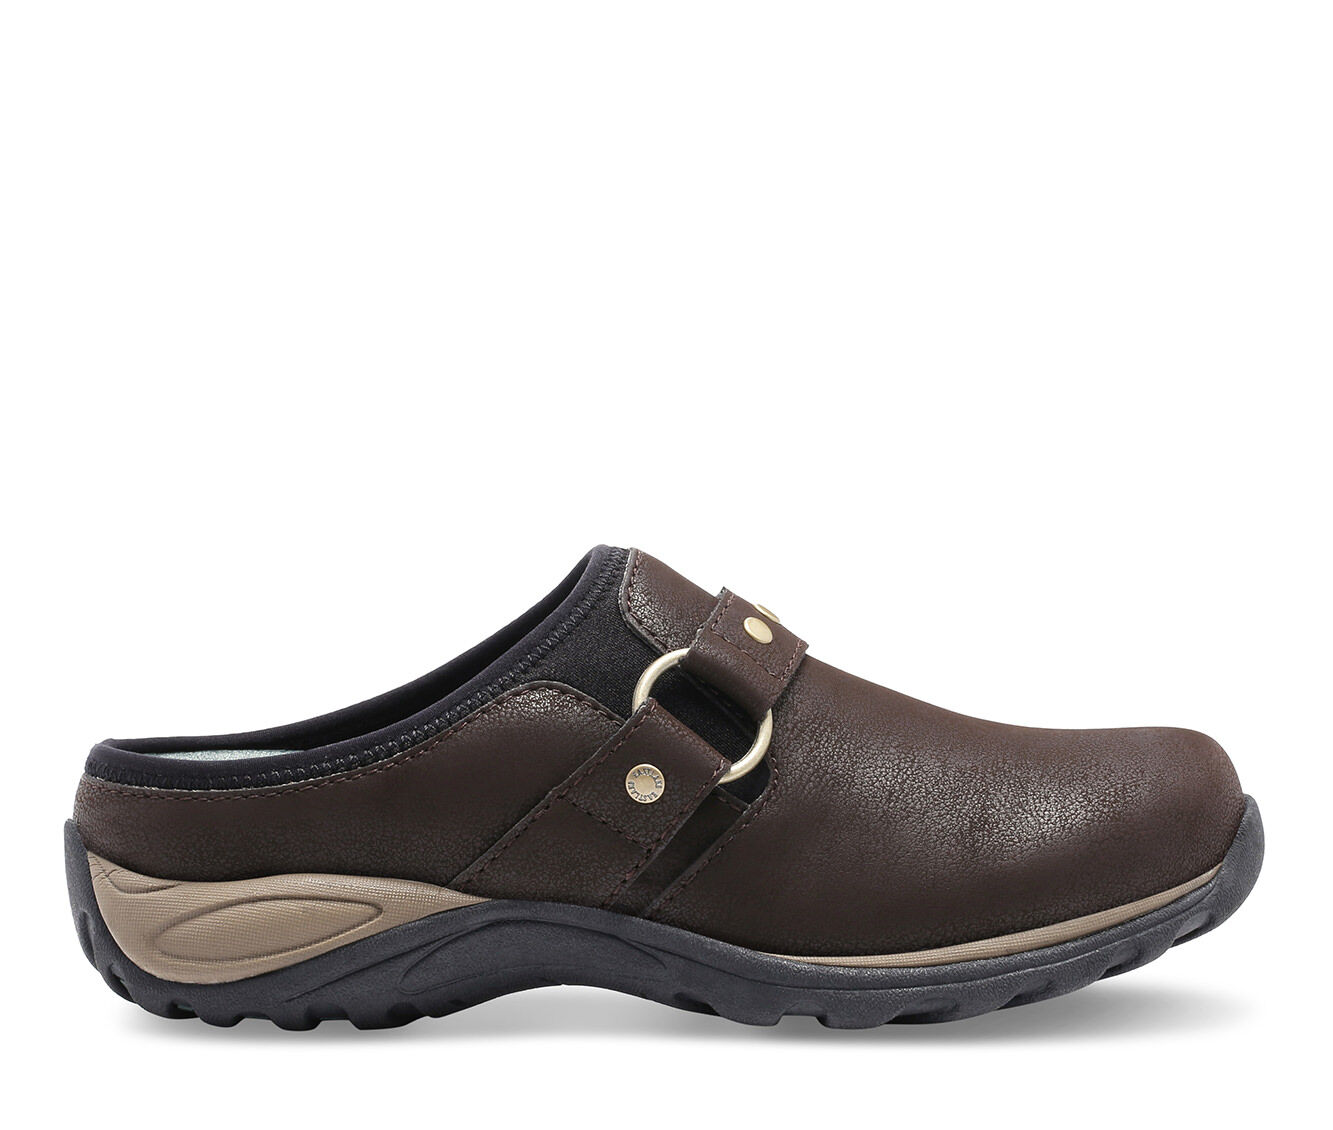 buy special Women's Eastland Cynthia Clogs Brown